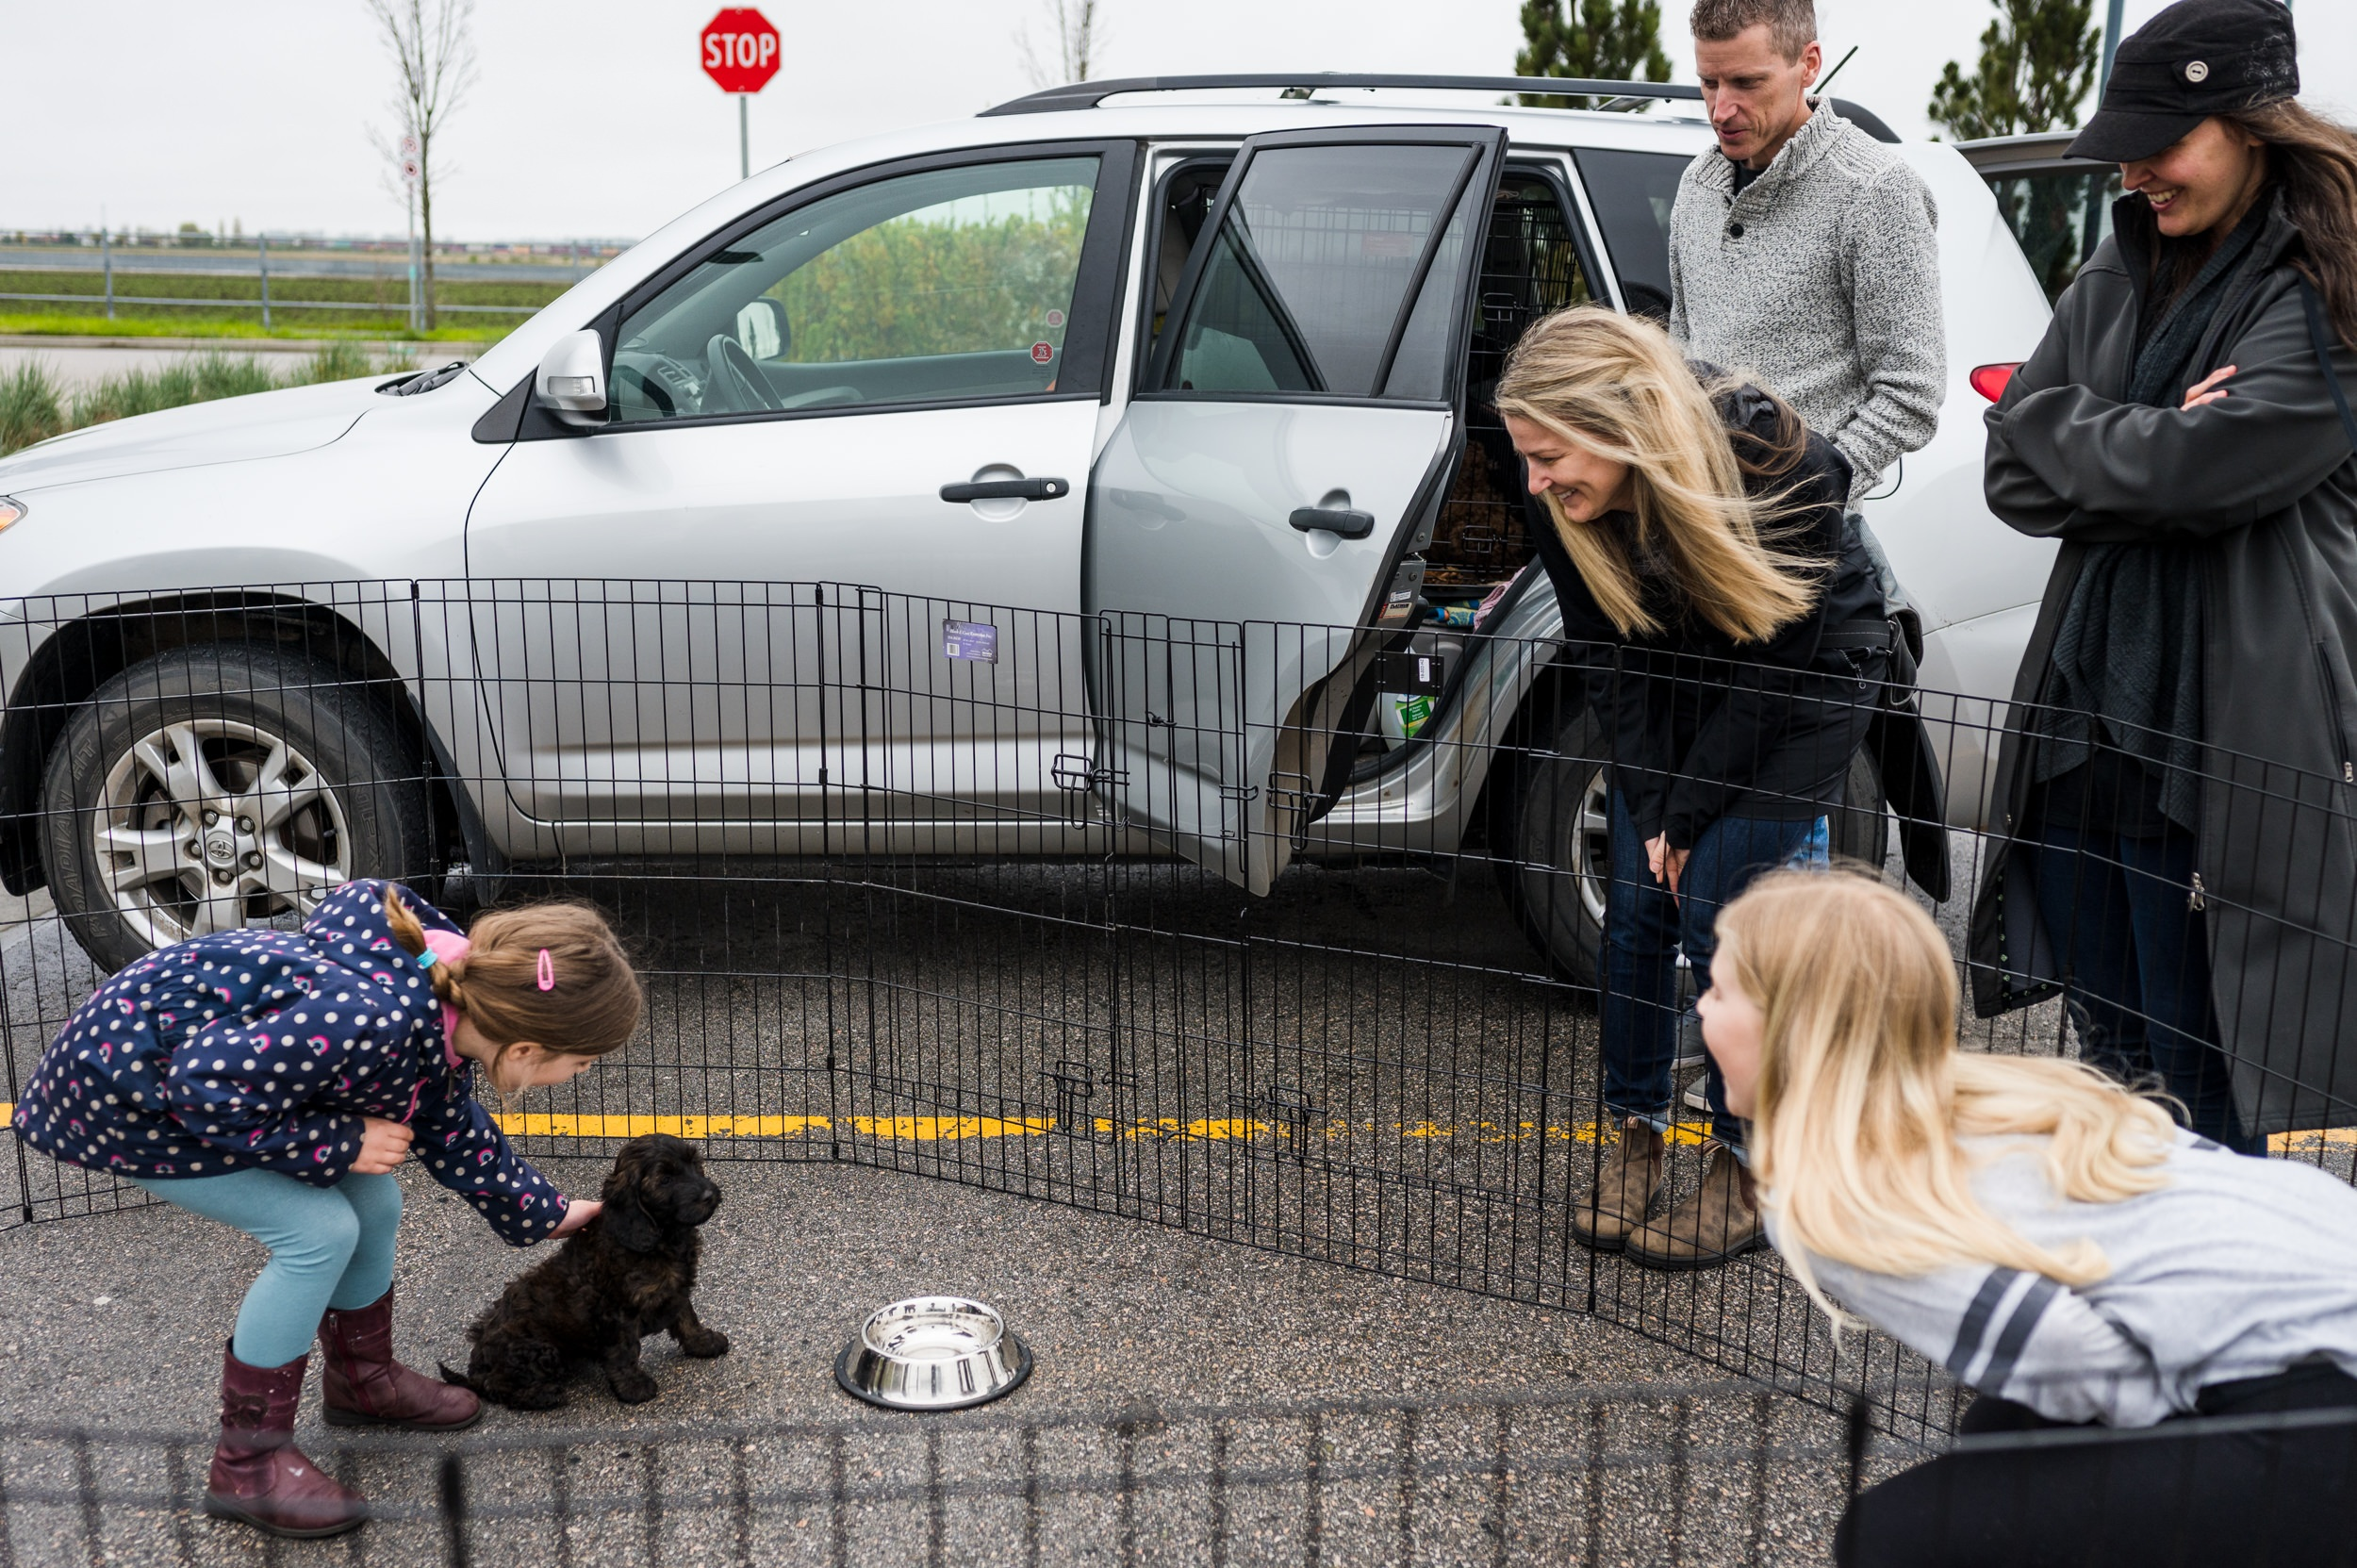 family meeting their puppy for the first time in a parking lot